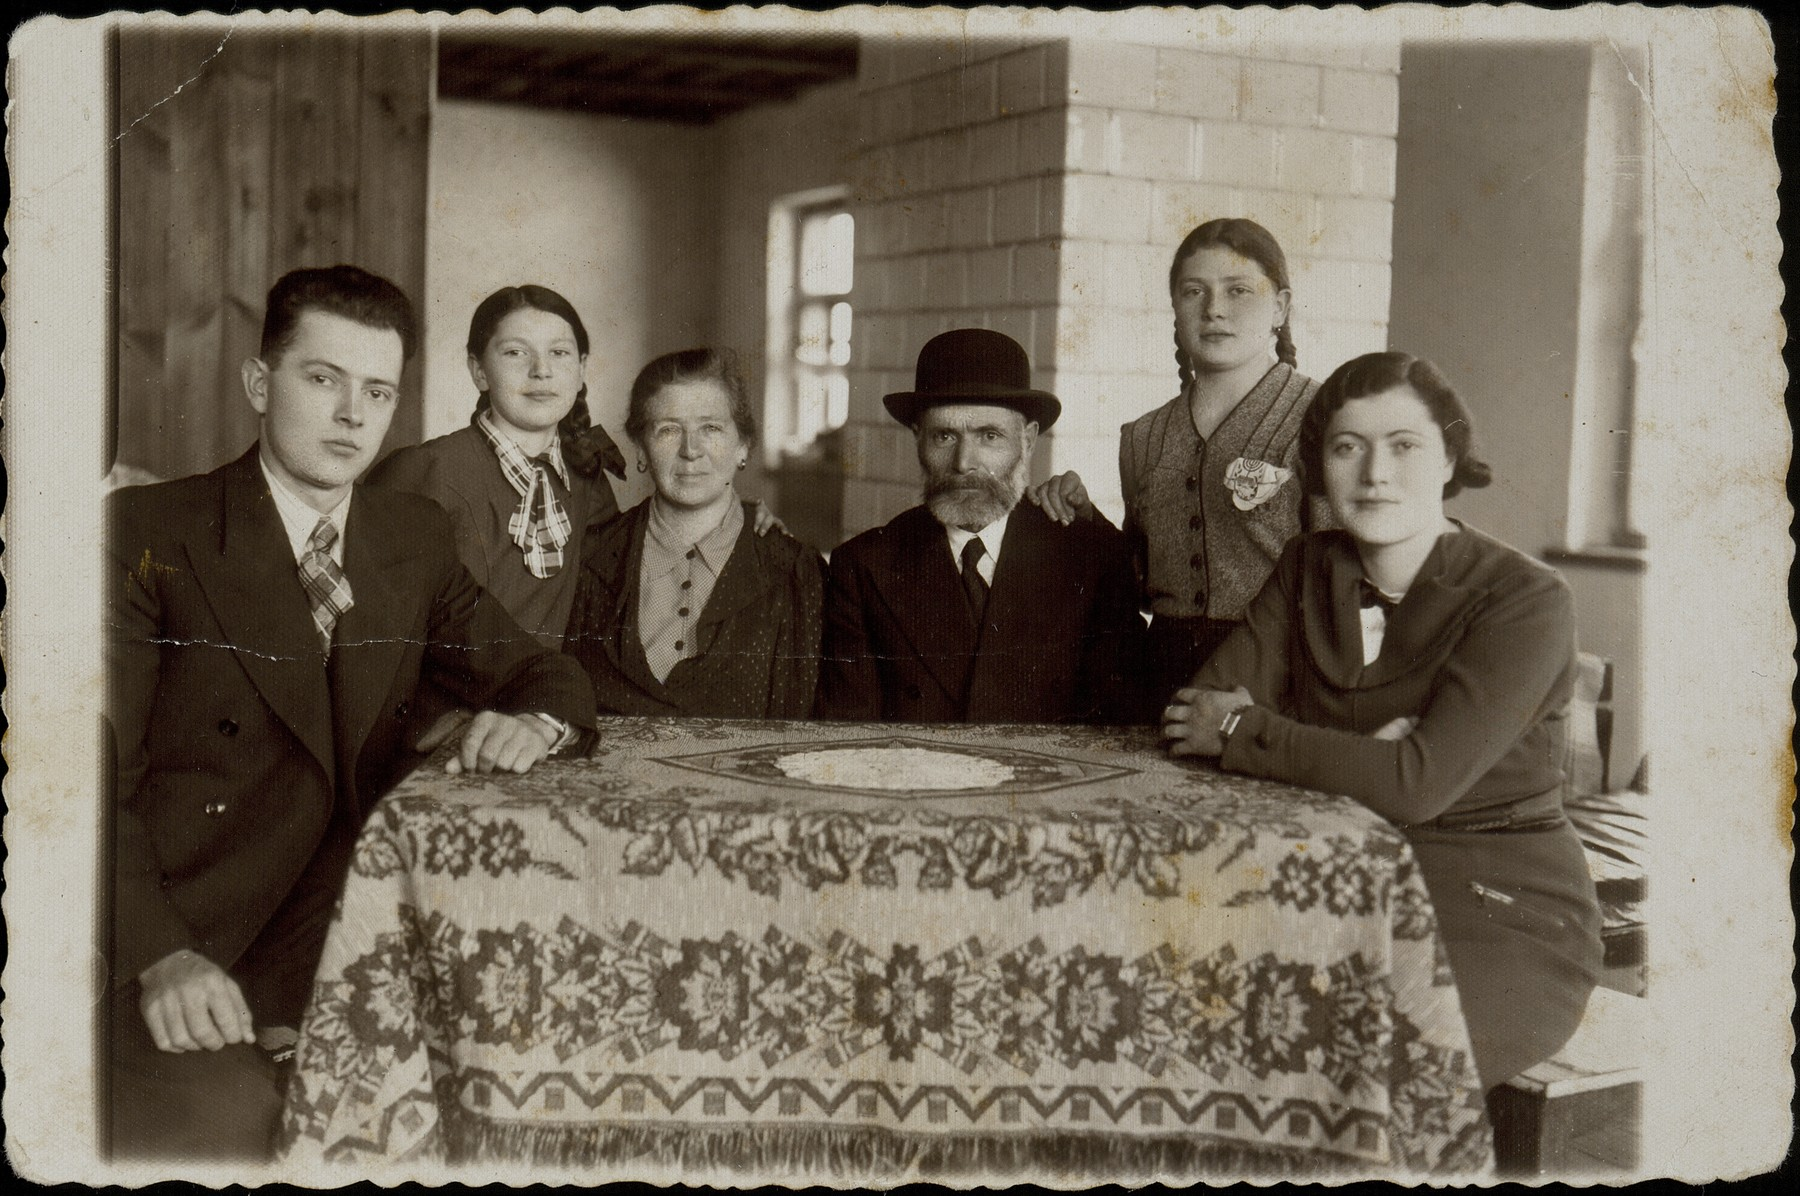 The Dubczanski family celebrates the third night of Hannukah together in their newly rebuilt house.   (right to left) Hannah, Rivka, father Hayyim-Moshe, mother Sarah, Masha, and Shlomo.  All were murdered by the Germans during the September 1941 mass killing action in Eisiskes.